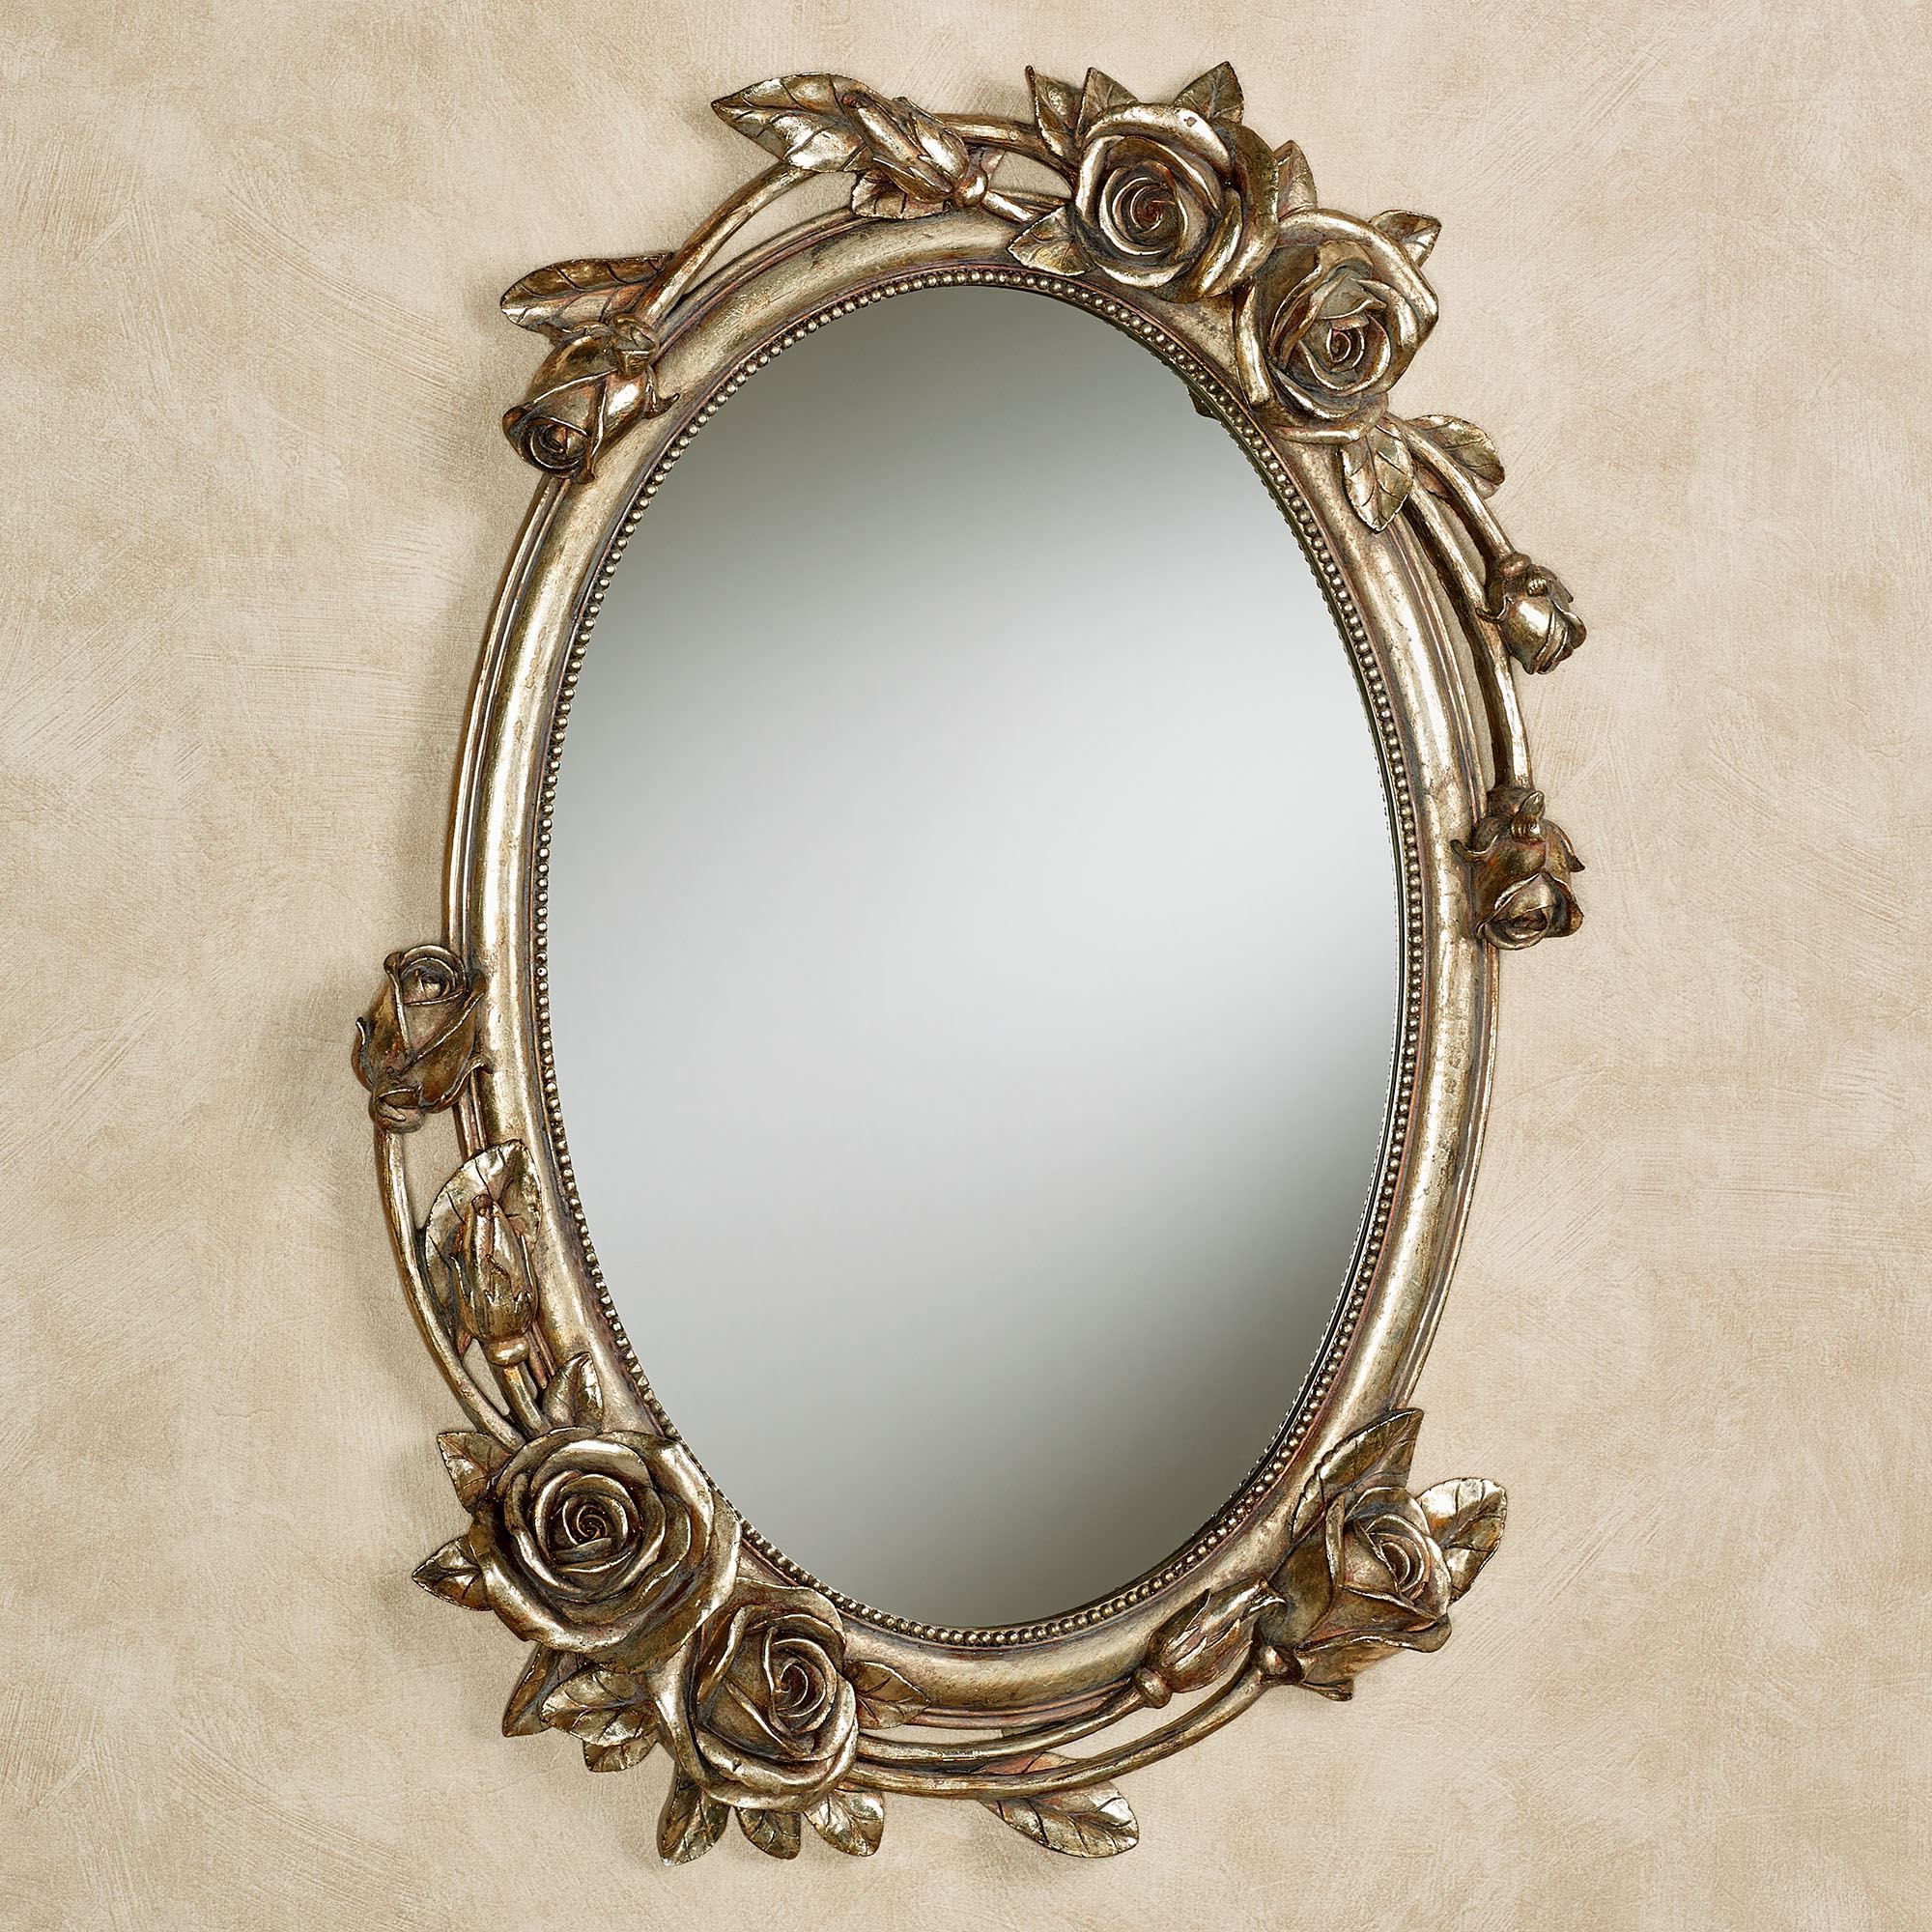 Rose Melody Venetian Gold Floral Oval Wall Mirror In 2019 With 2019 Ikea Oval Wall Mirrors (Gallery 18 of 20)